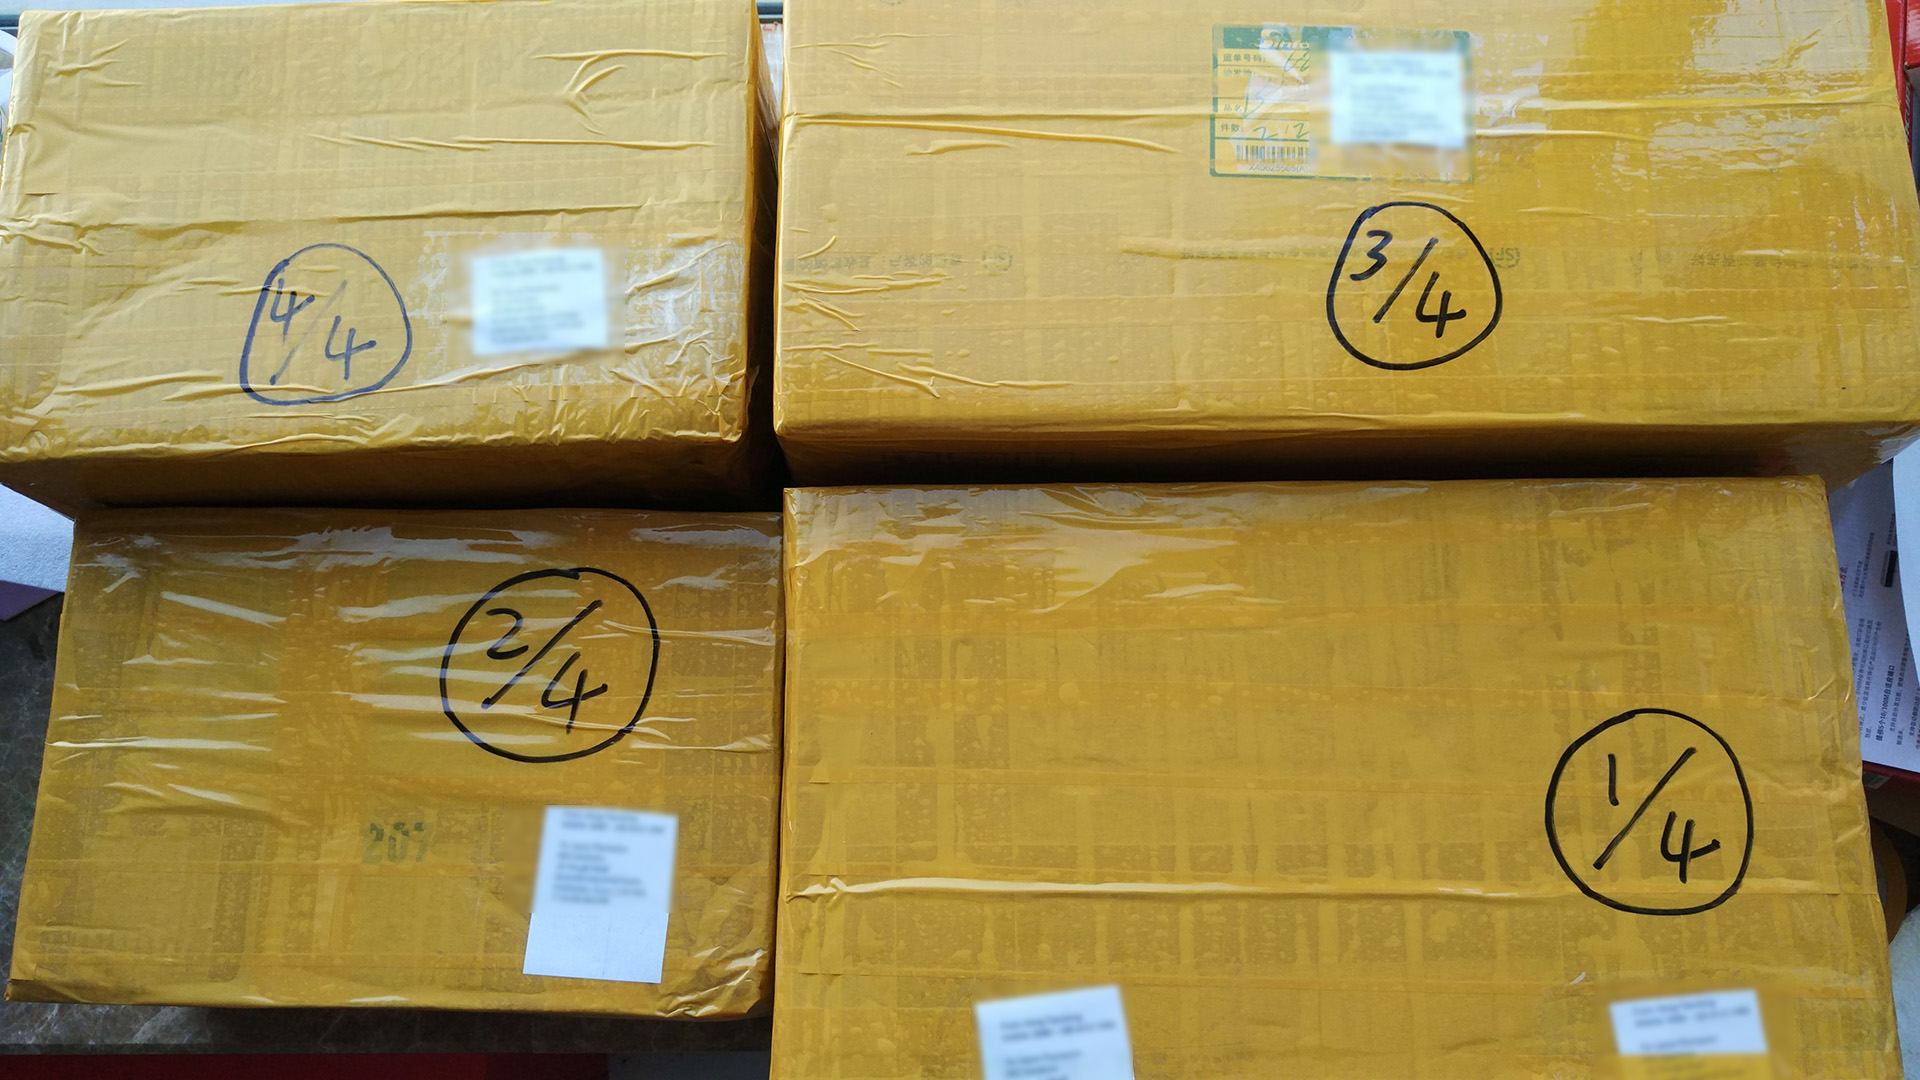 DHL_shipping_package